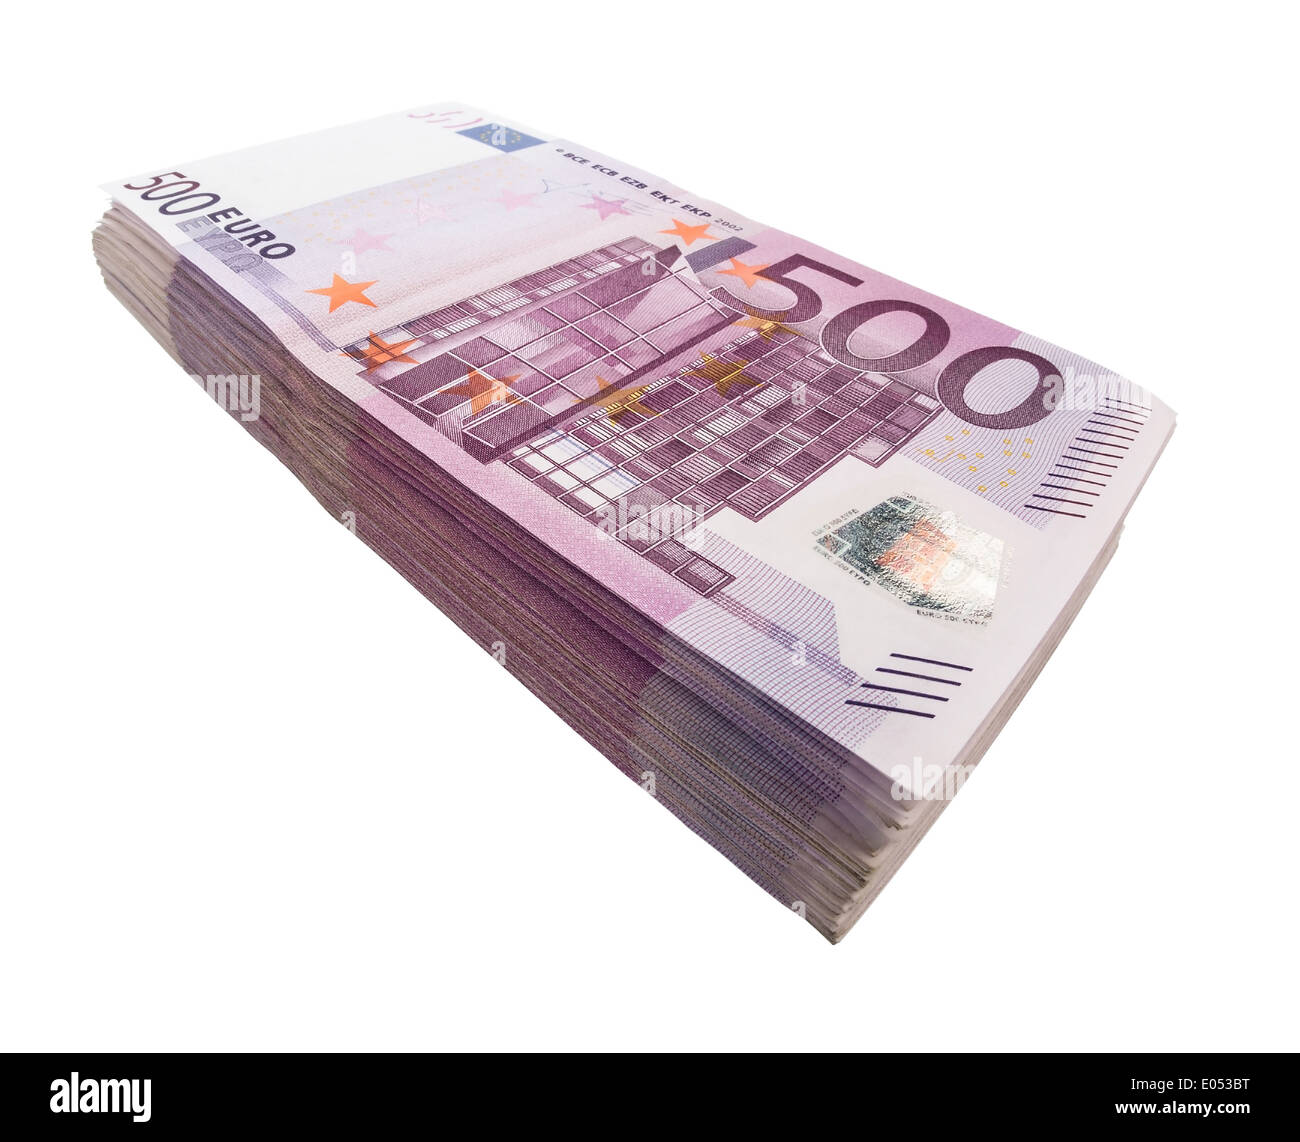 many 500 euros of bank notes symbolic photo for wealth and stock